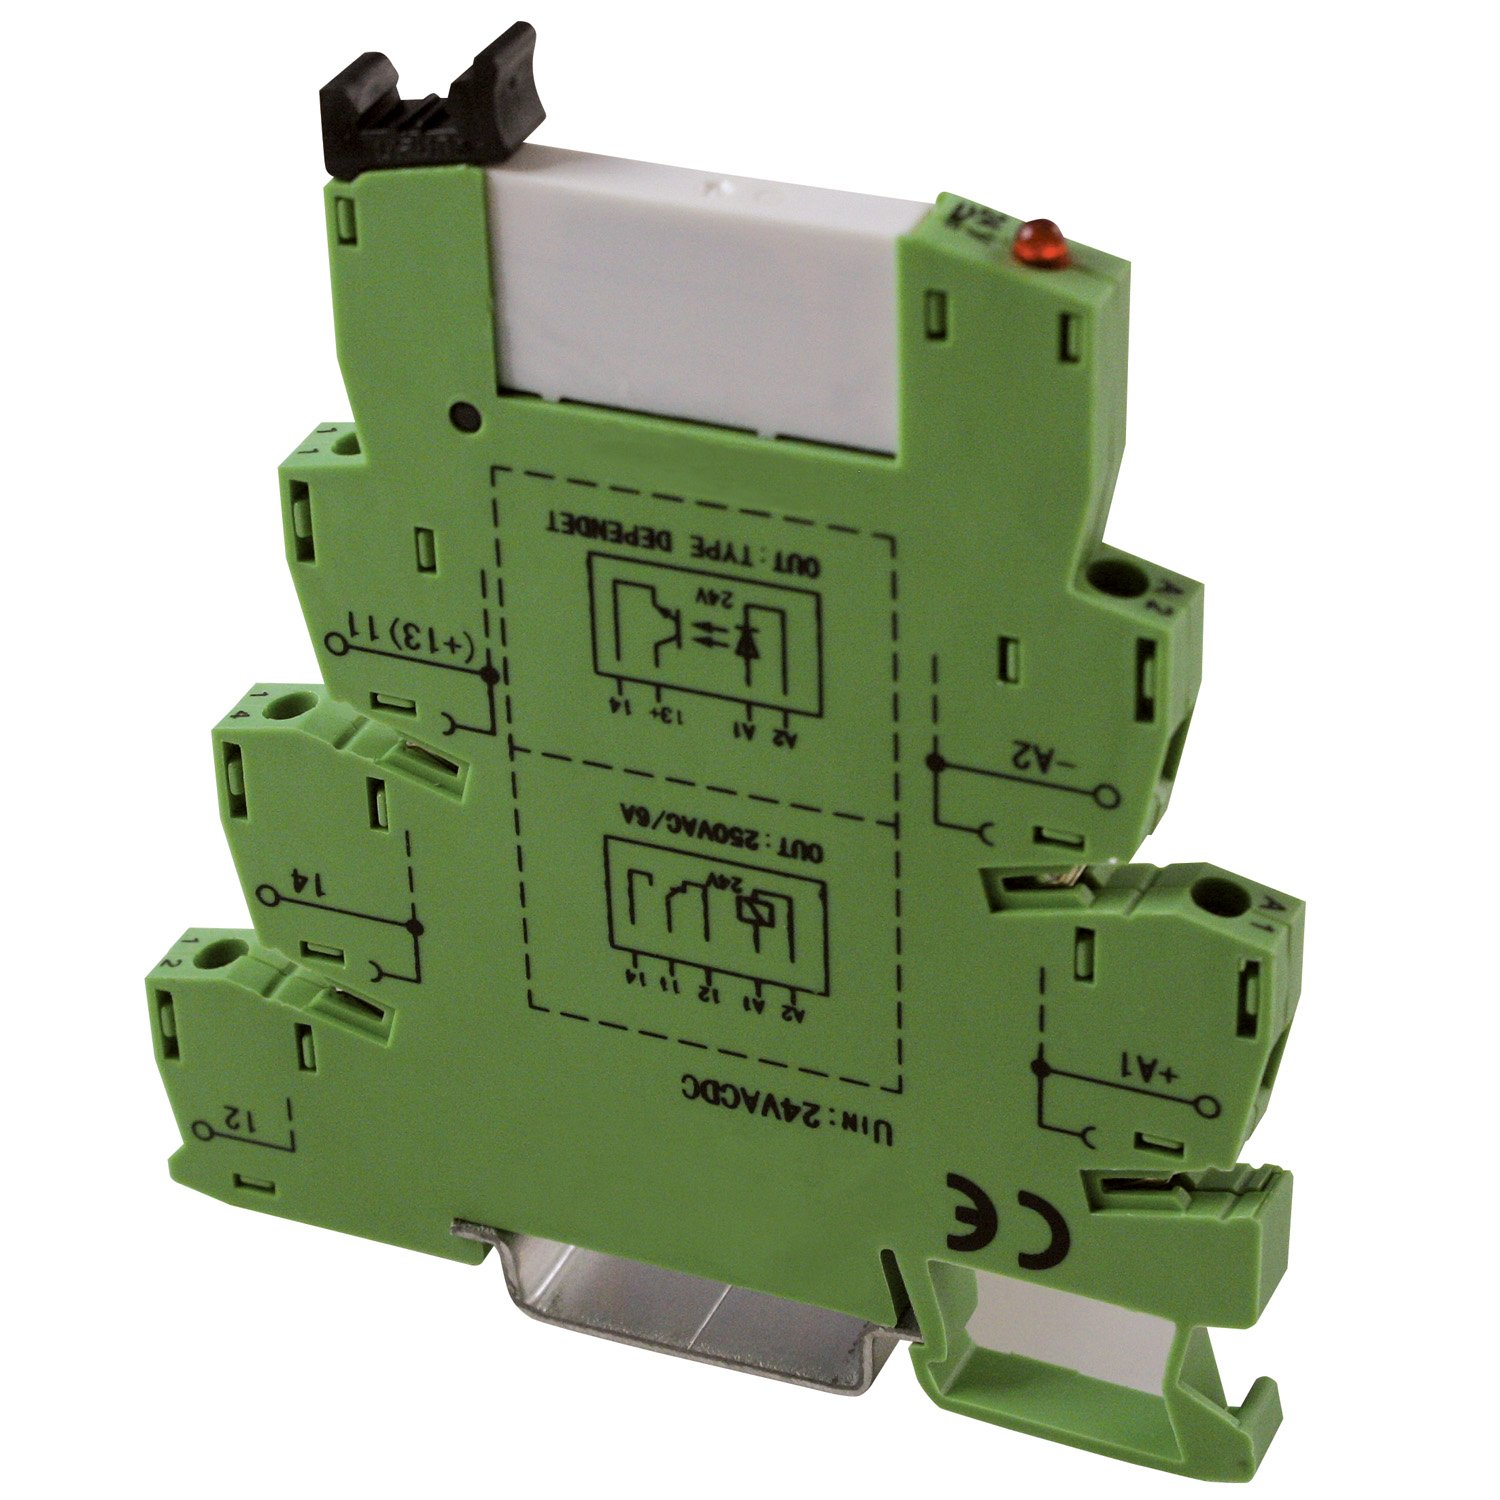 ASI ASI328003 ASIPLCREL24Vac/dc Pluggable SPDT Relay with DIN Rail Mount Screw Clamp Terminal Block Base, 6 amp, 250 VAC Rating, 24 VAC/DC Coil